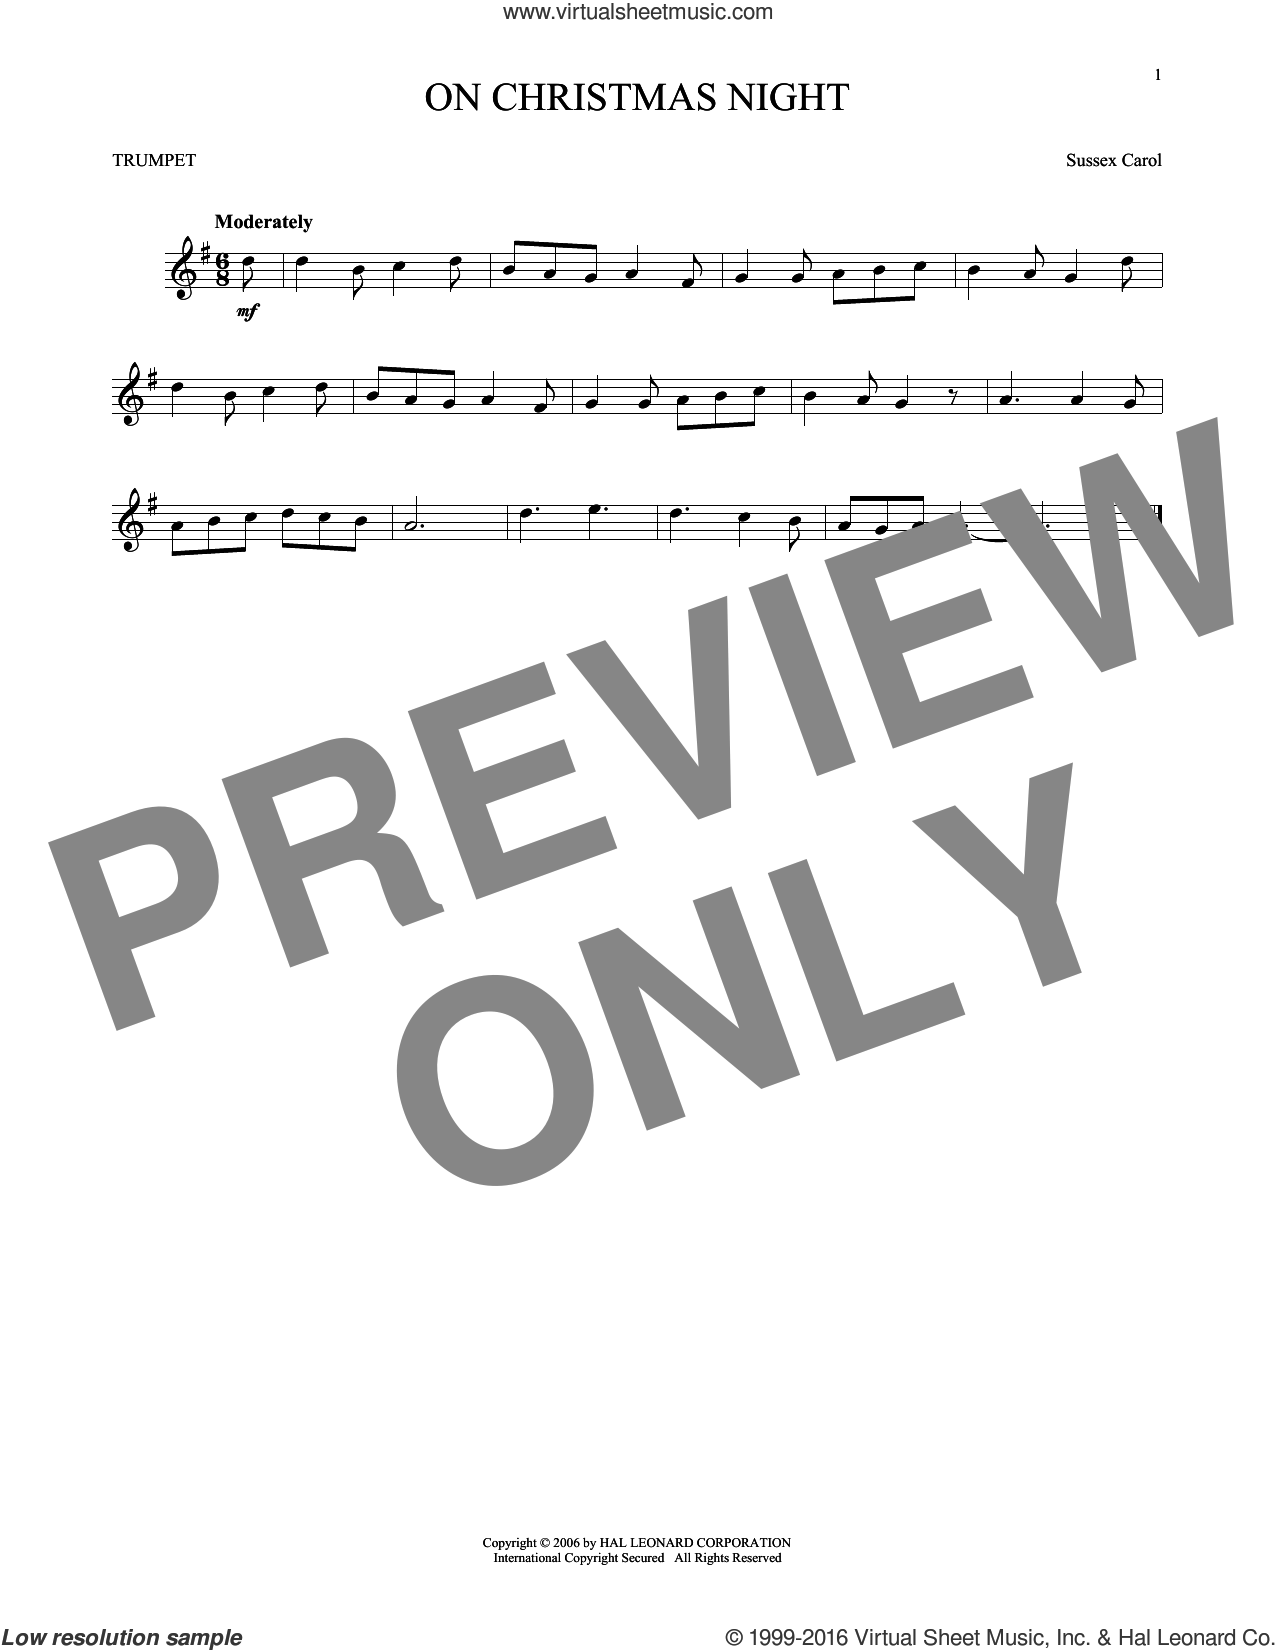 On Christmas Night sheet music for trumpet solo. Score Image Preview.